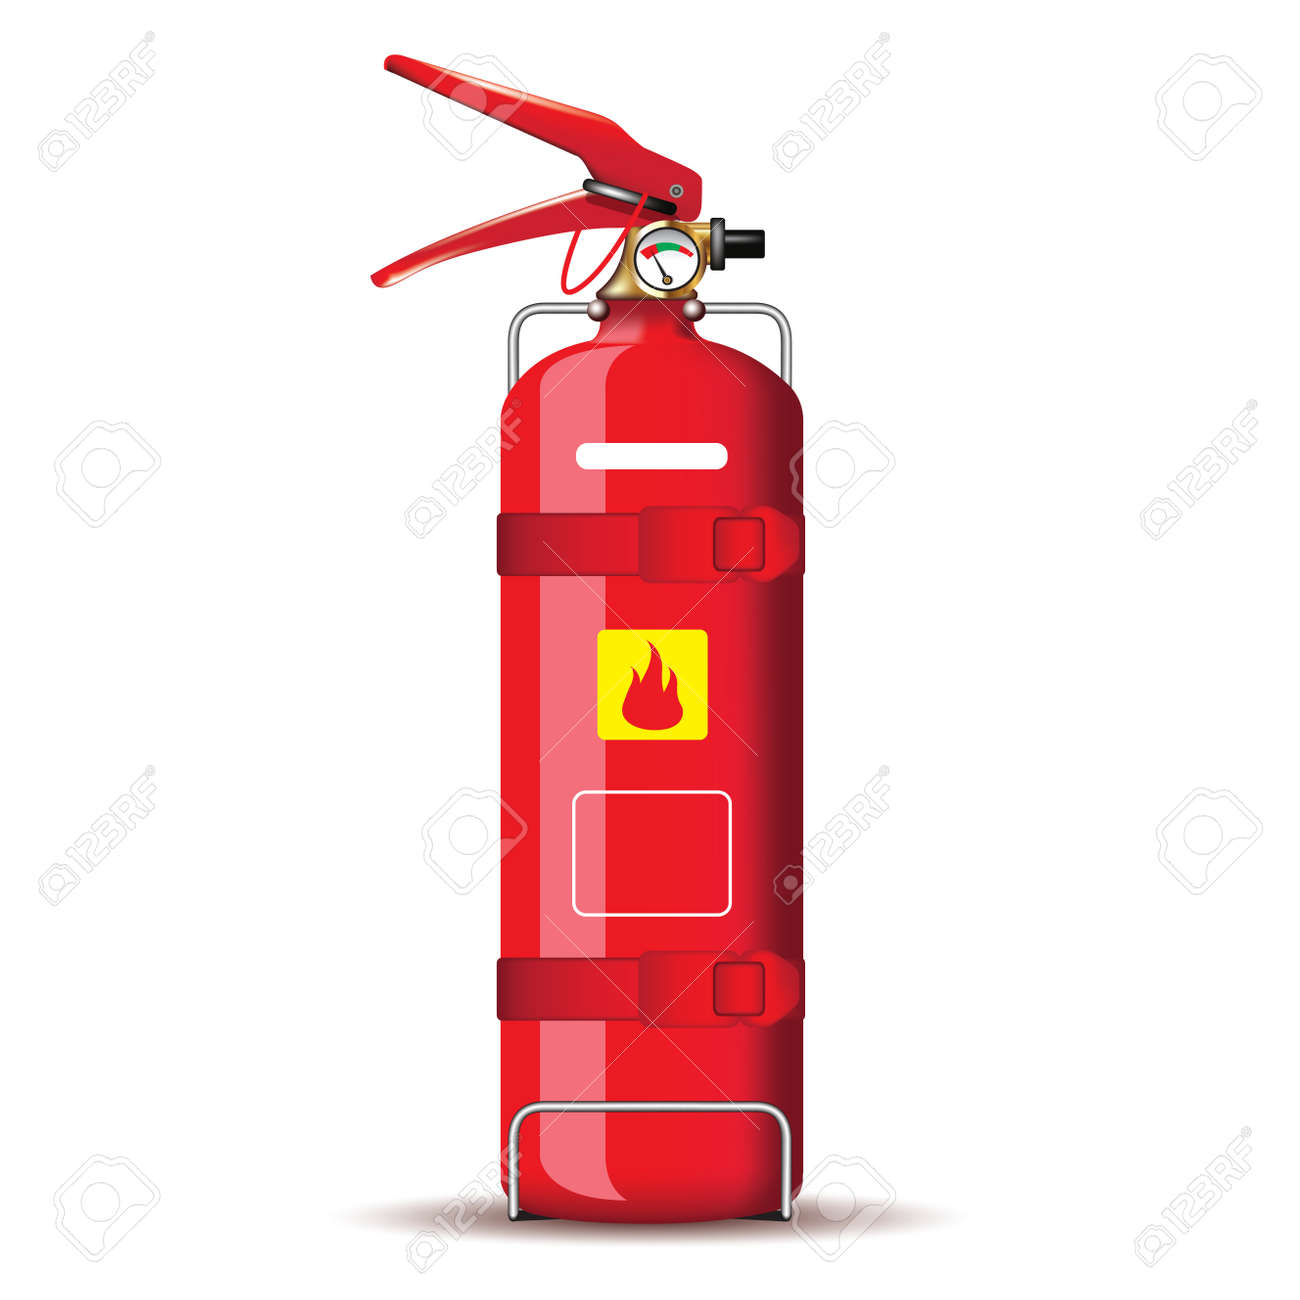 Red fire extinguisher isolated on white. Vector illustration - 44229163